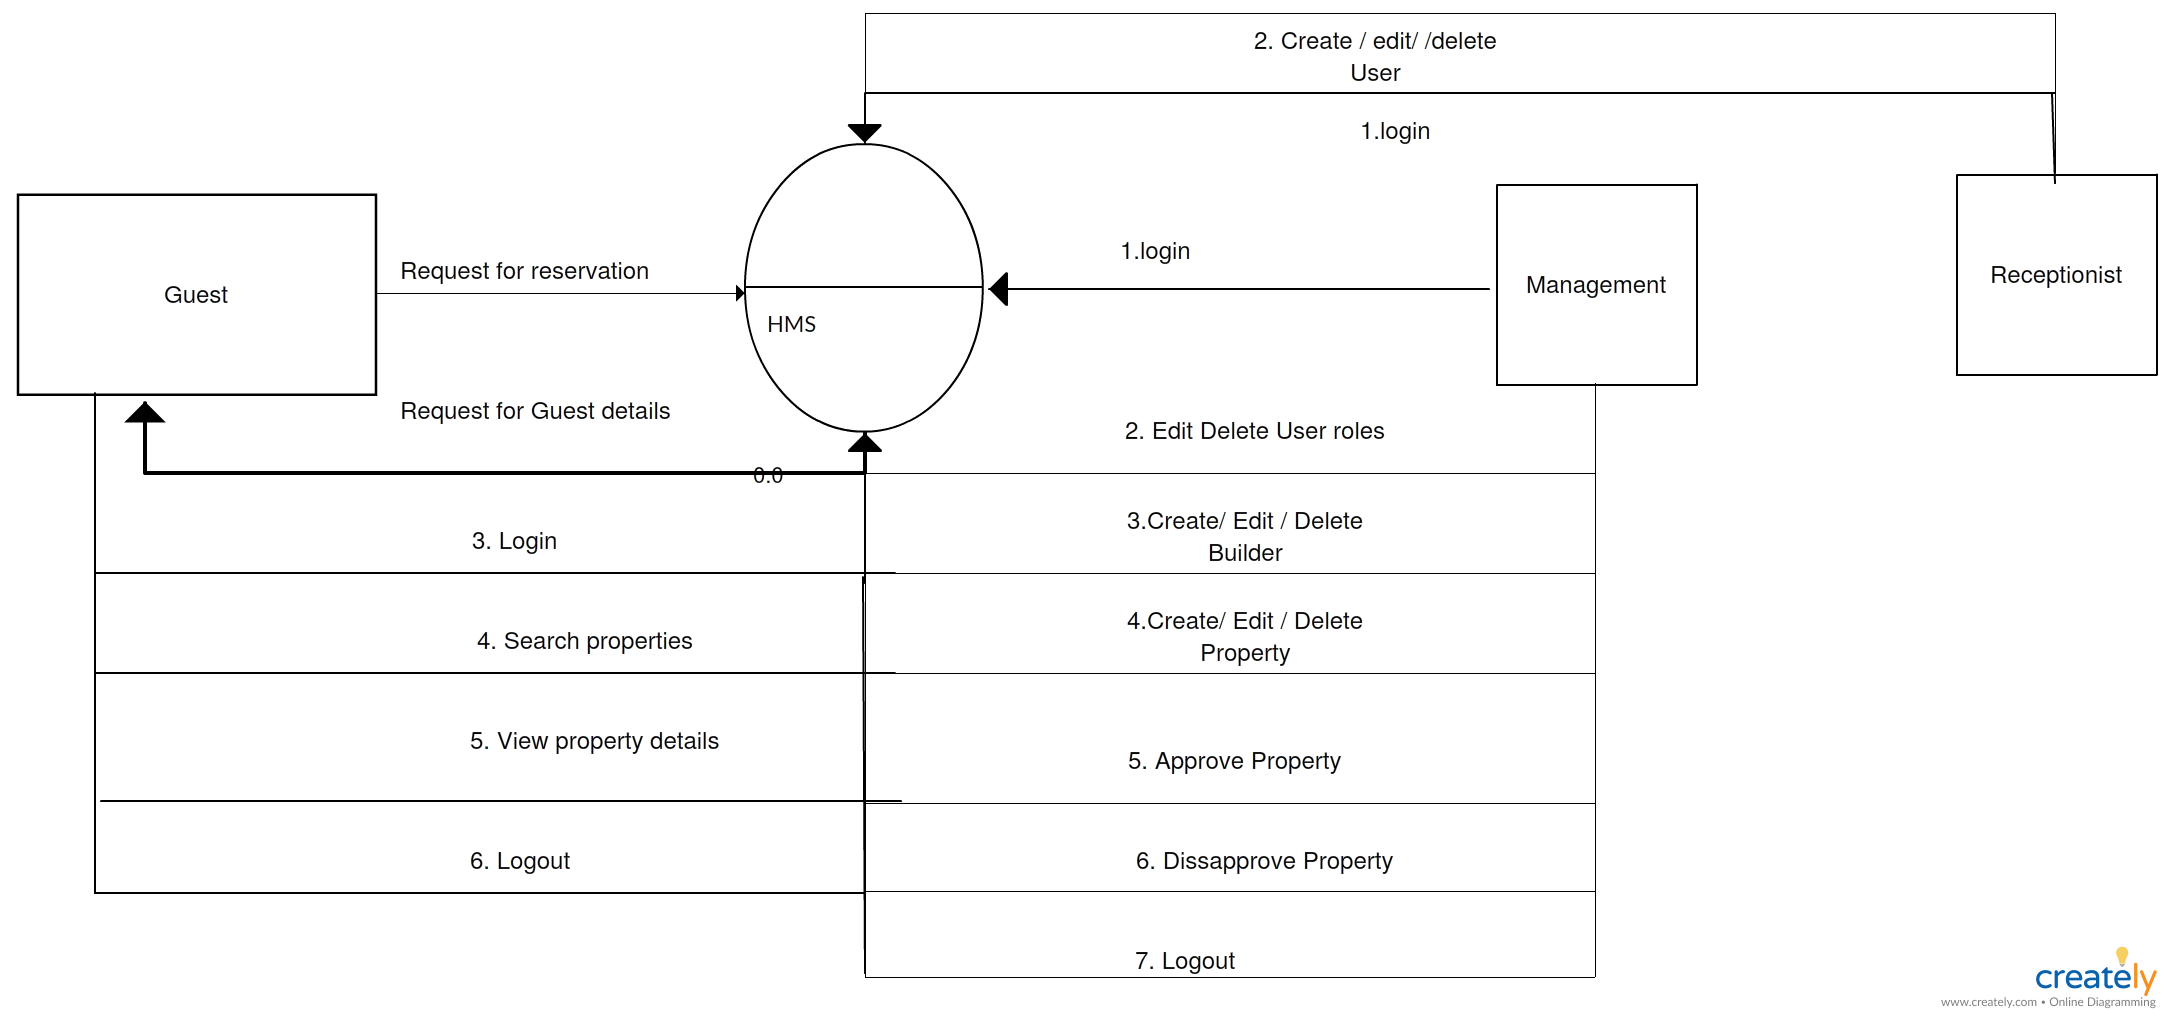 hight resolution of data flow diagram dfd gs of hotel management system click on the image to use this as a template and modify the flow as per your requirement